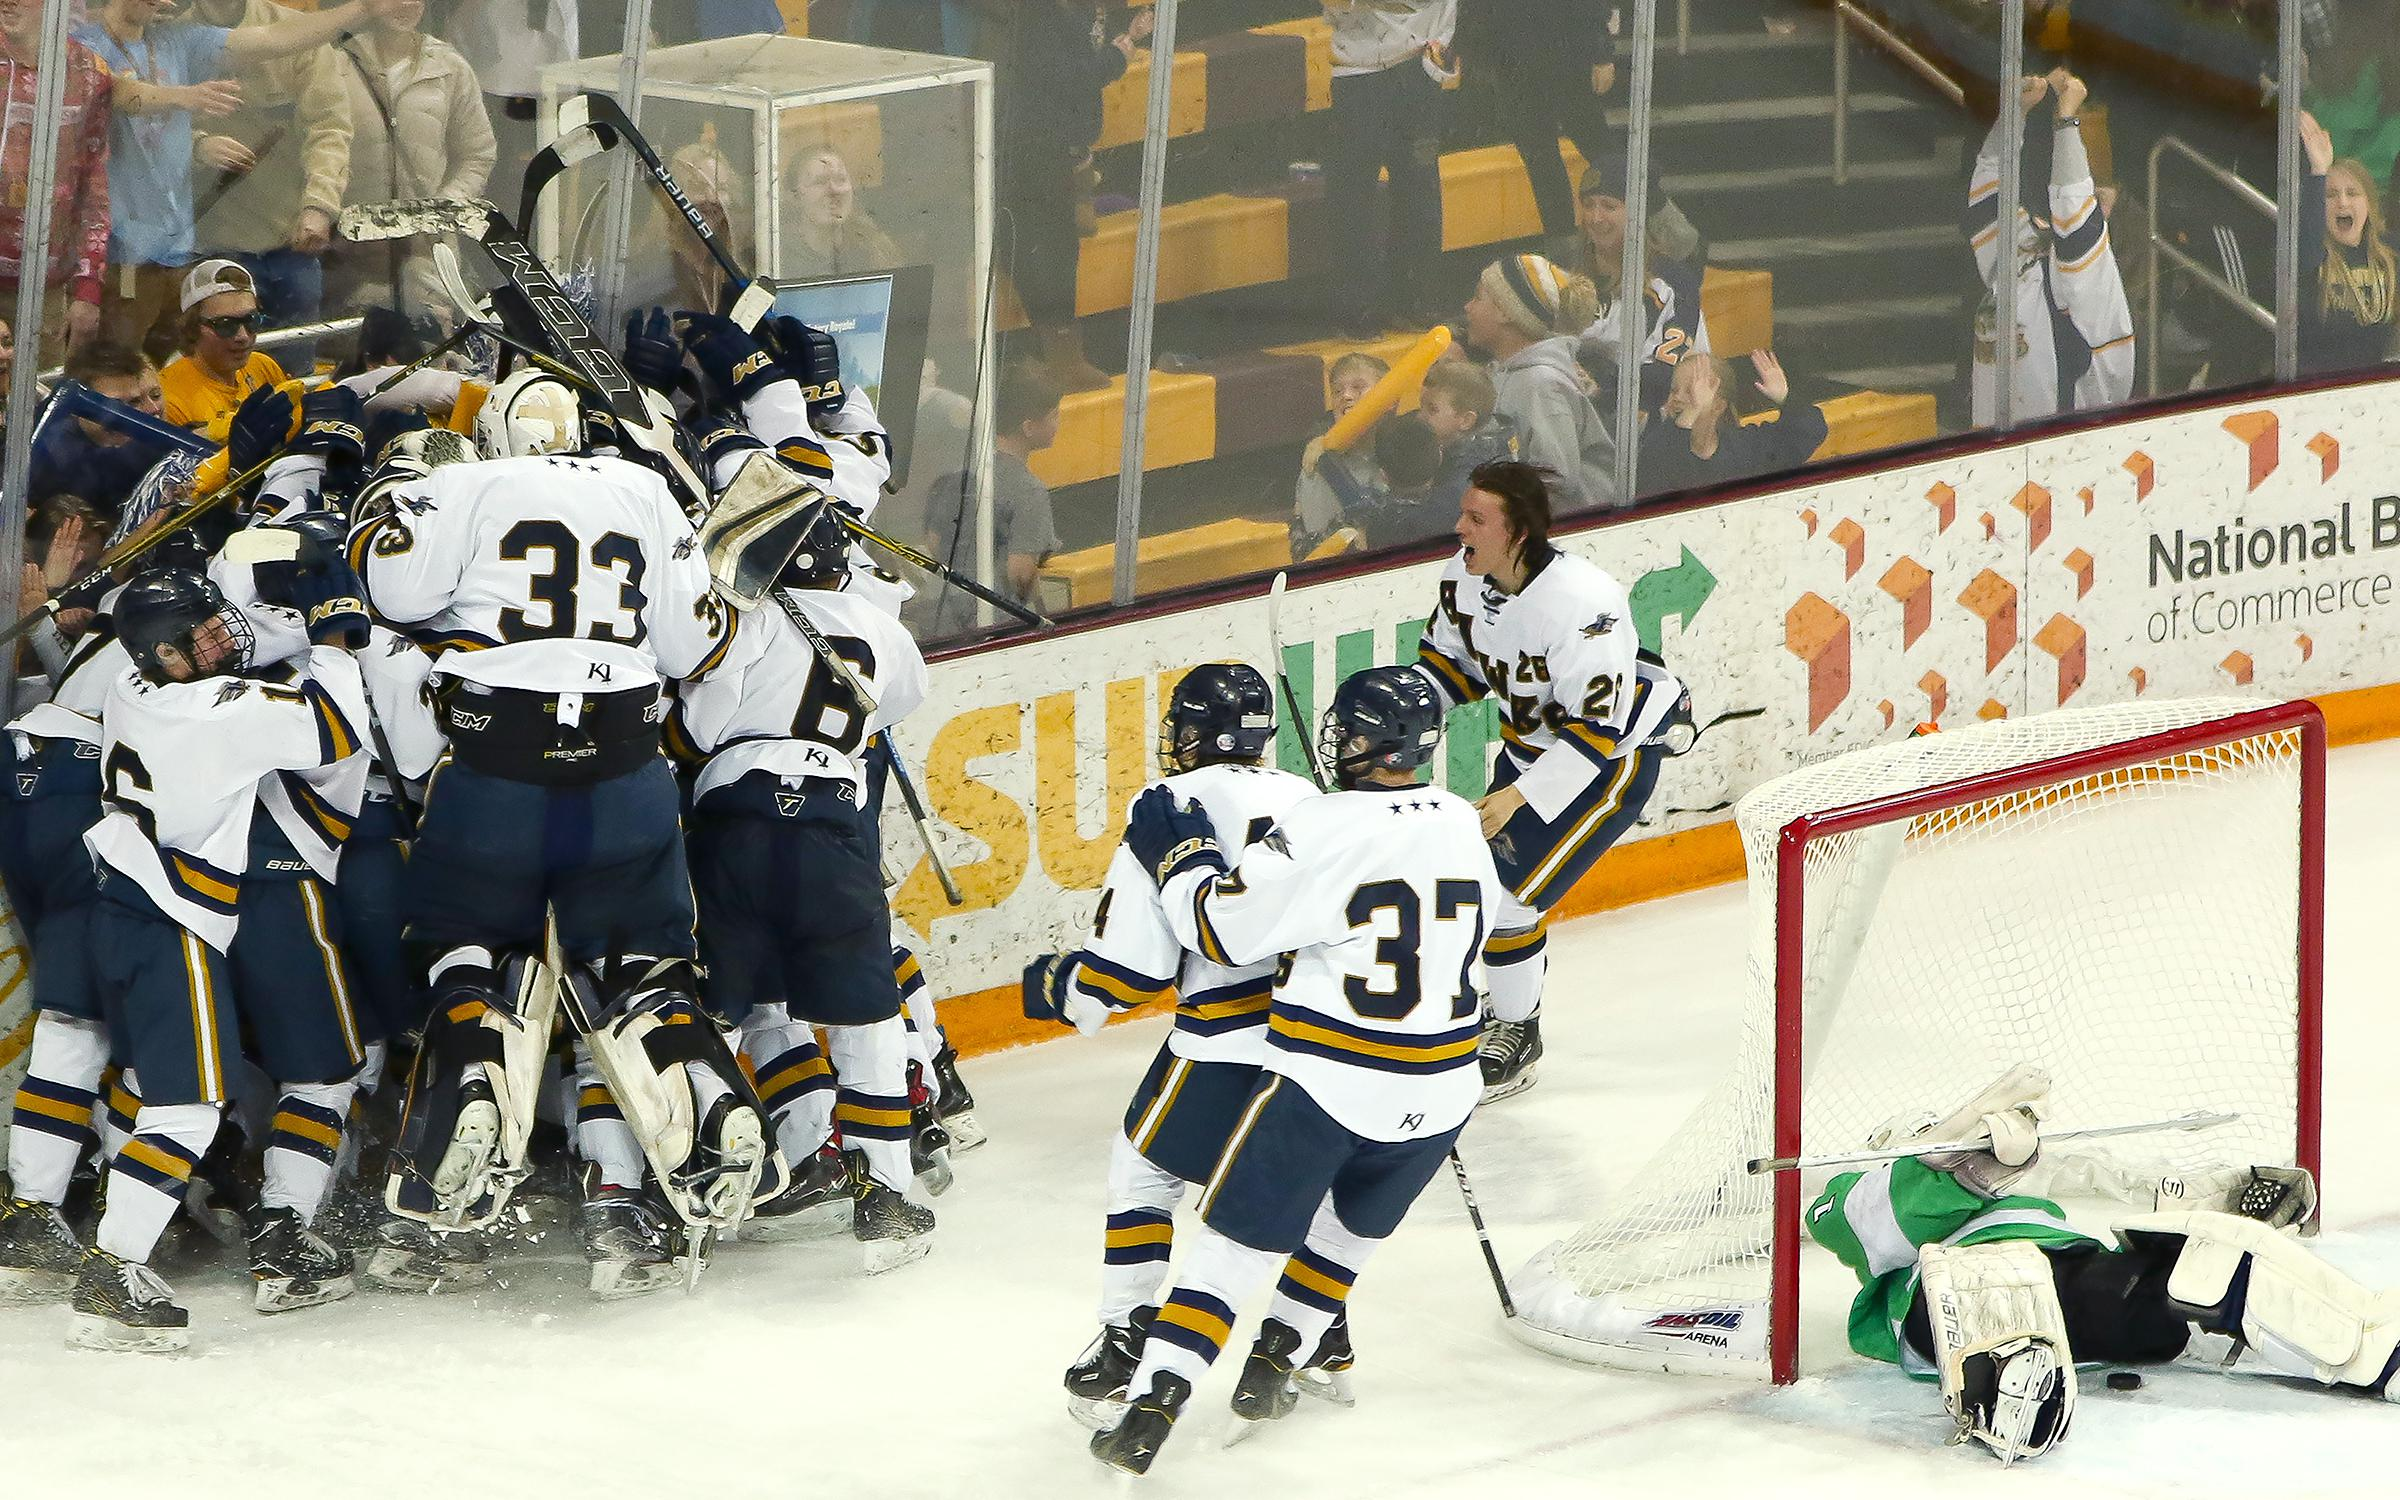 Hermantown celebrates after Tyler Watkins scored the game-winning goal in double overtime of the Class 1A, Section 7 championship at AMSOIL Arena on Wednesday. The Hawks defeated Greenway 5-4. Photo by Dave Harwig, Viewthroughmylens.net